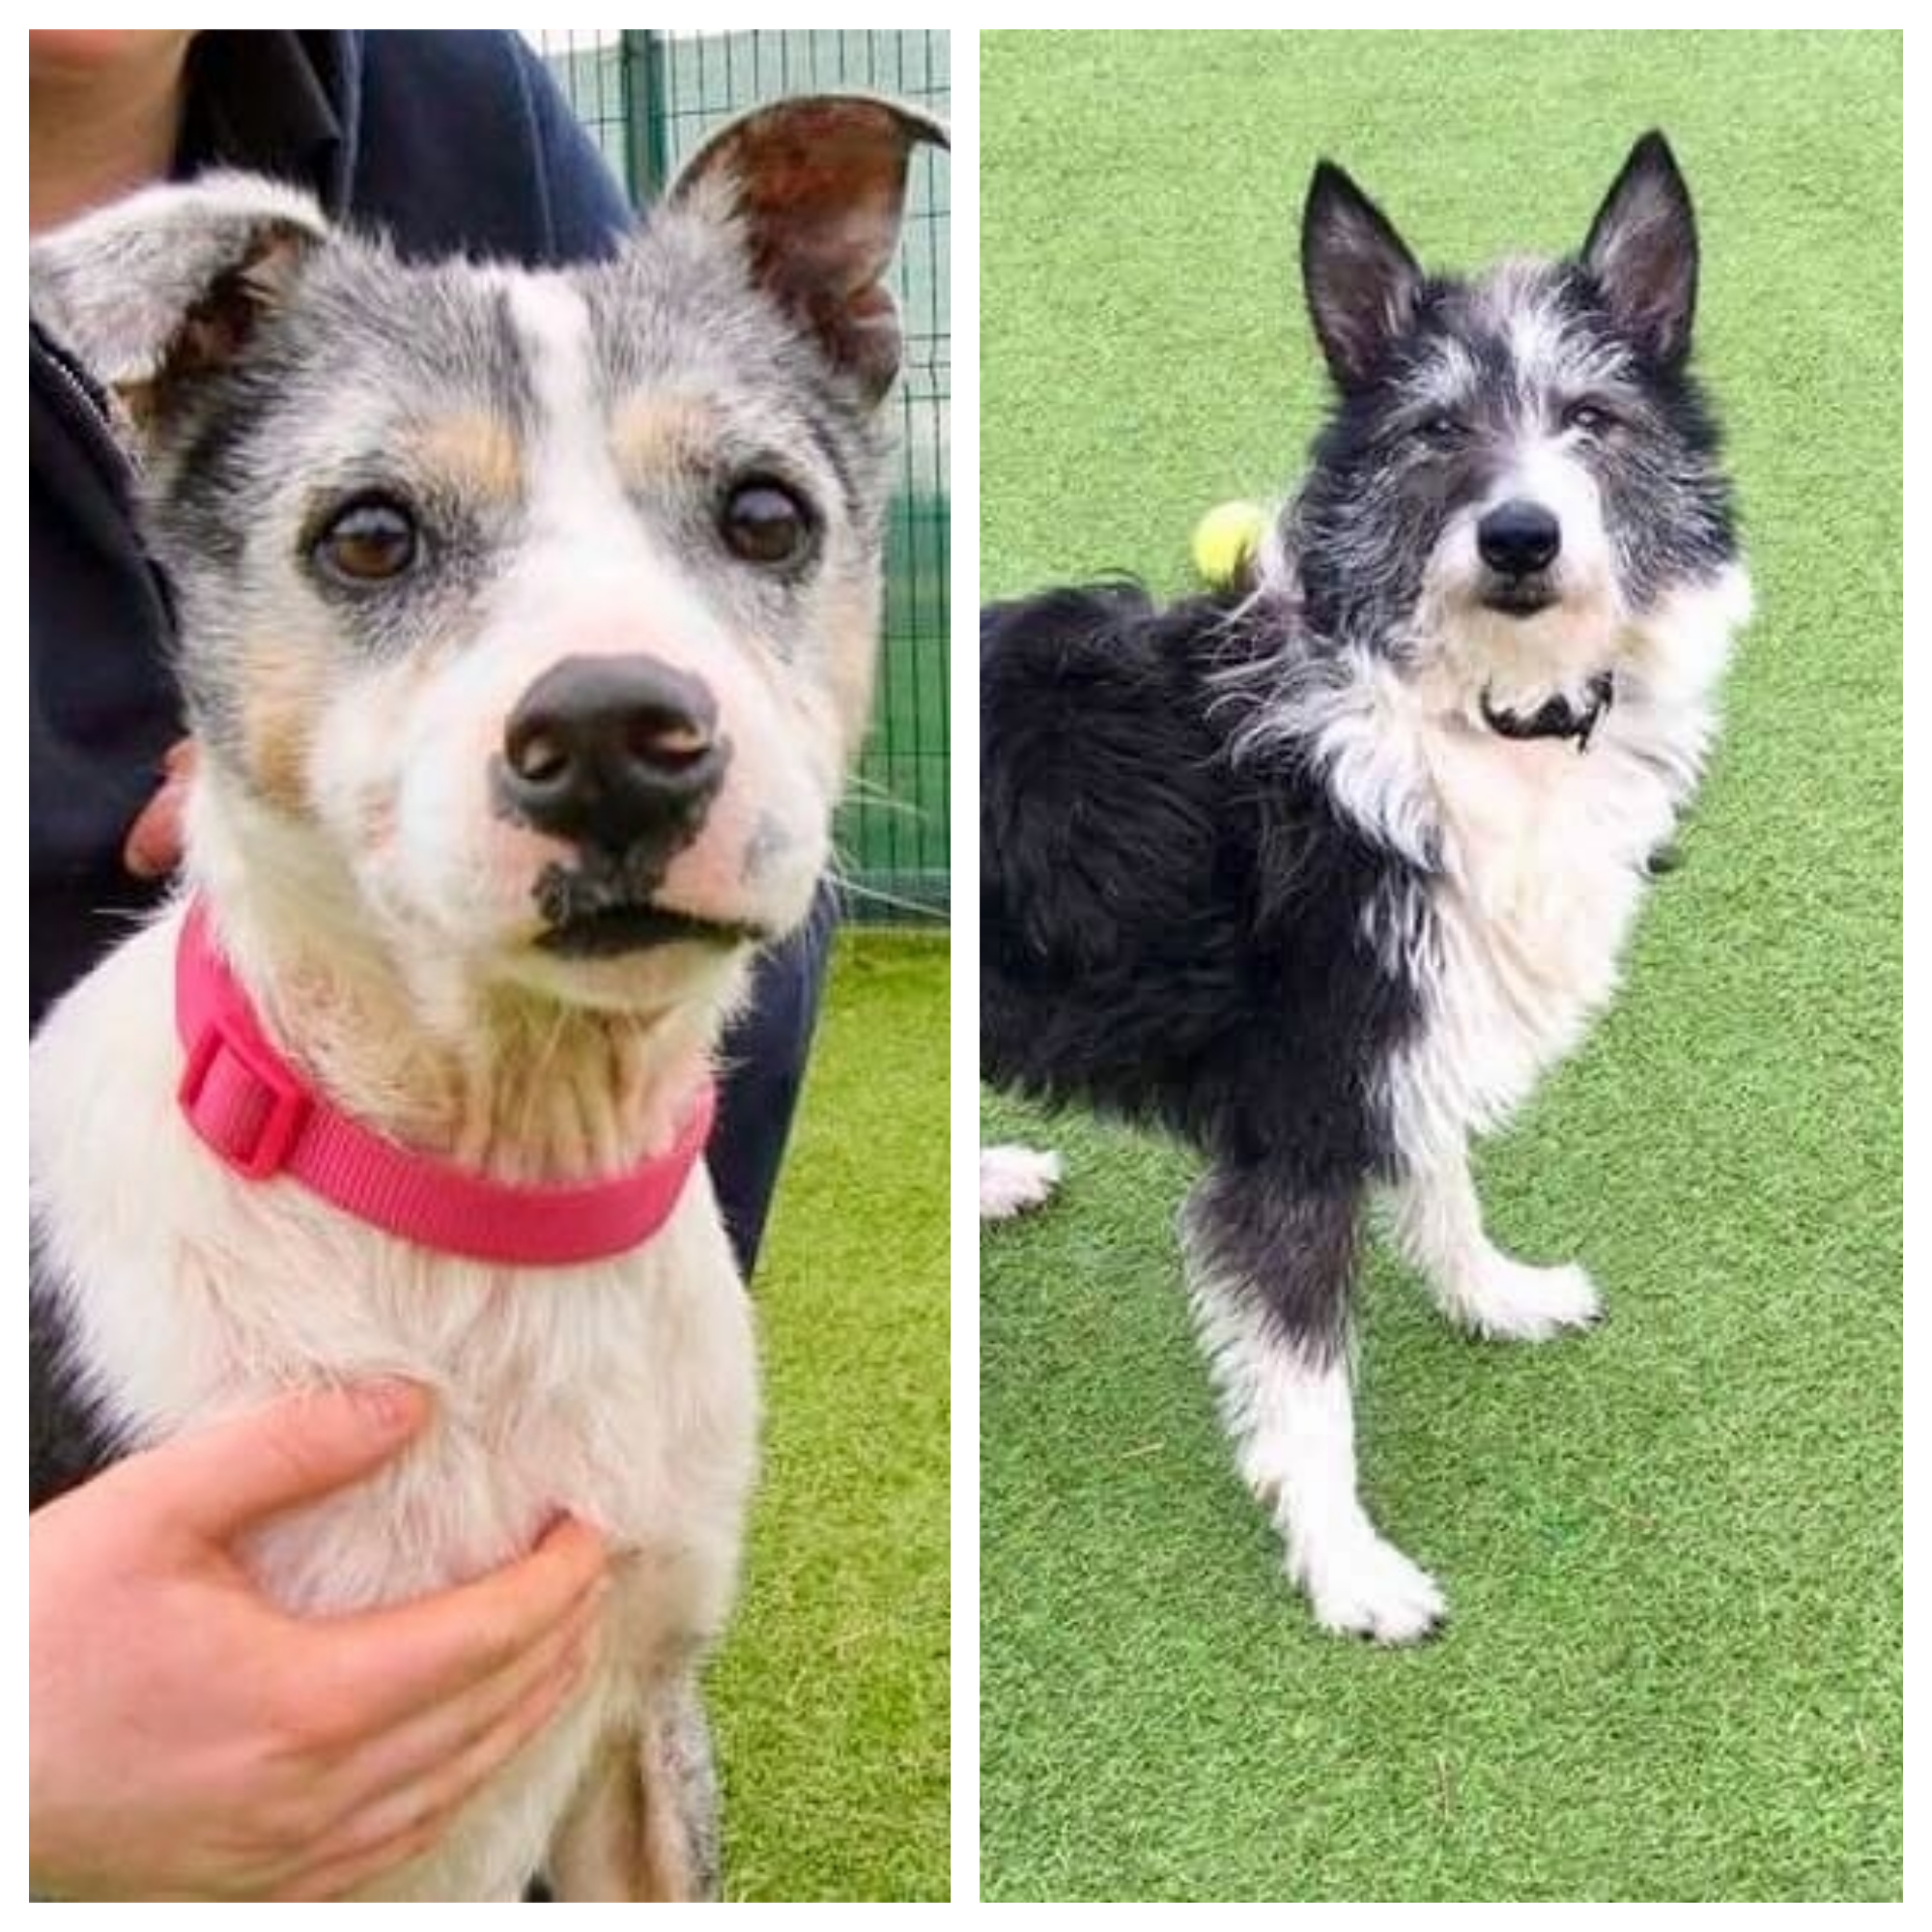 Custard and Tippy will appear on Channel Five's 'Dog Rescuers' tonight